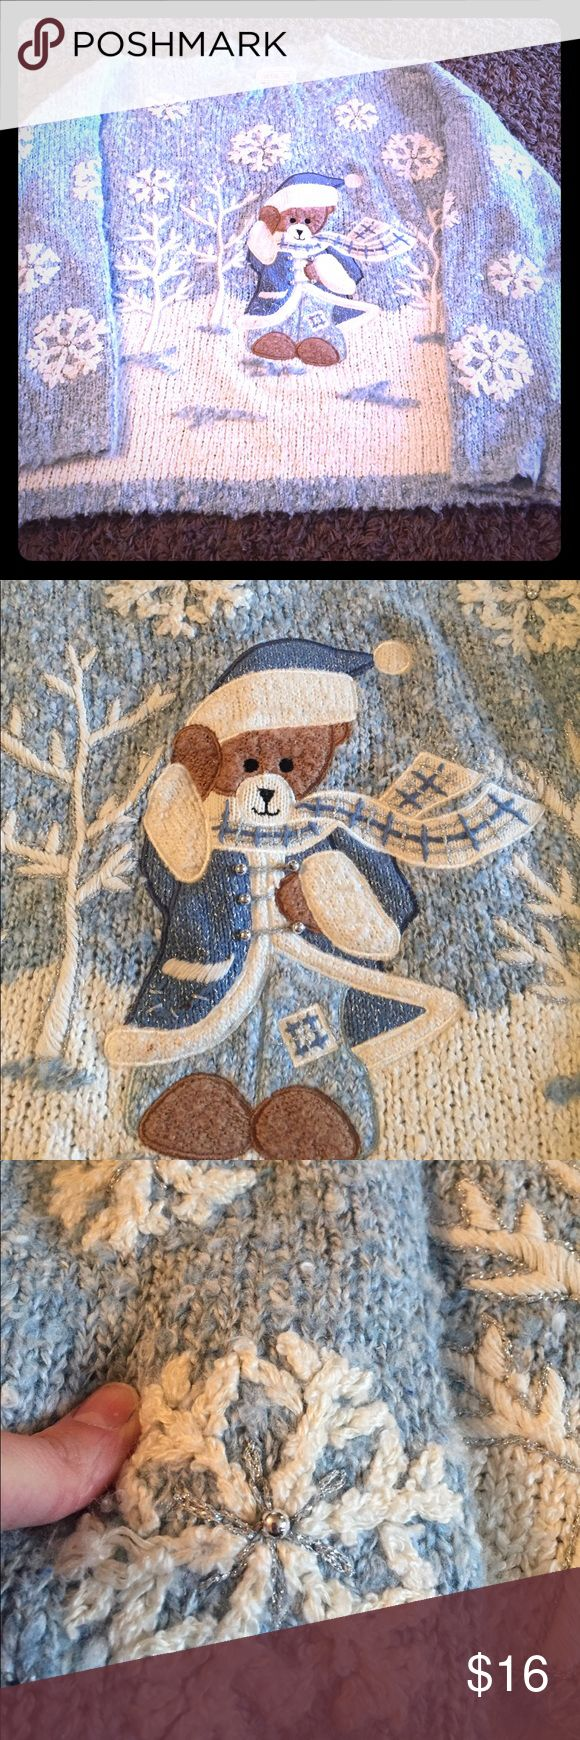 Winter Cozy Mandal Bay Teddy Bear Sweater XL In VGUC due to wash wear. Still in awesome cozy condition! Adorable and very detailed! Embroidery is beautiful! Seems to run a tad large I'd say 16-18? Mandal Bay Sweaters Crew & Scoop Necks